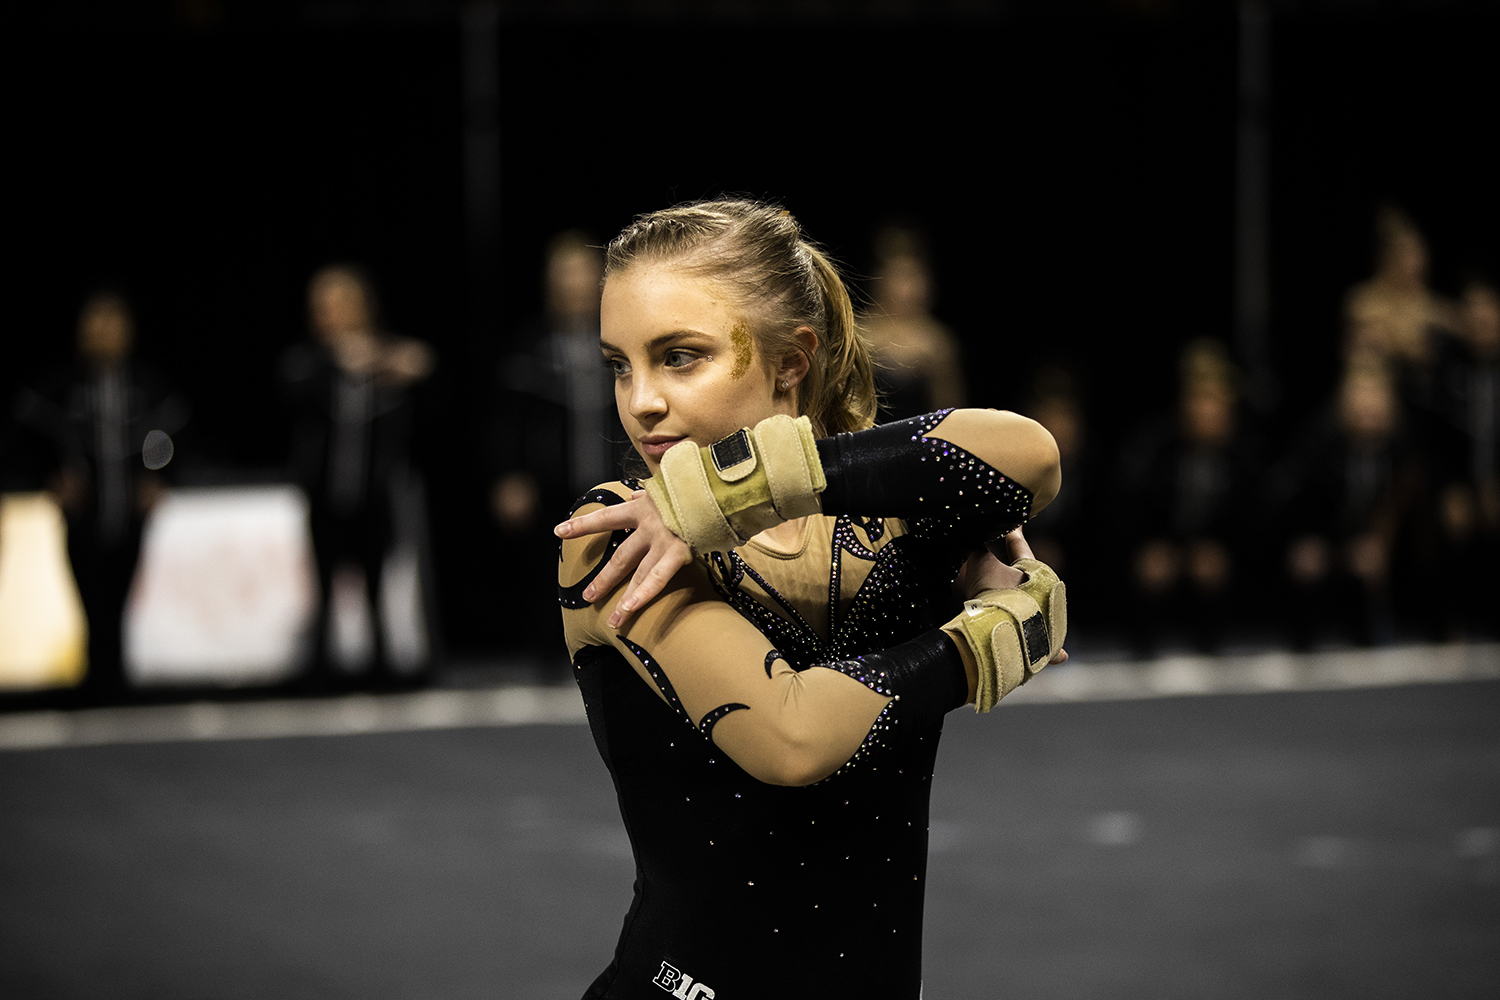 Iowa+gymnast+Lauren+Guerin+performs+on+the+floor+during+the+women%27s+gymnastics+meet+vs.+SEMO+at+Carver-Hawkeye+Arena+on+Friday%2C+January+11%2C+2019.+The+GymHawks+defeated+the+Redhawks+194.700-180.925.+